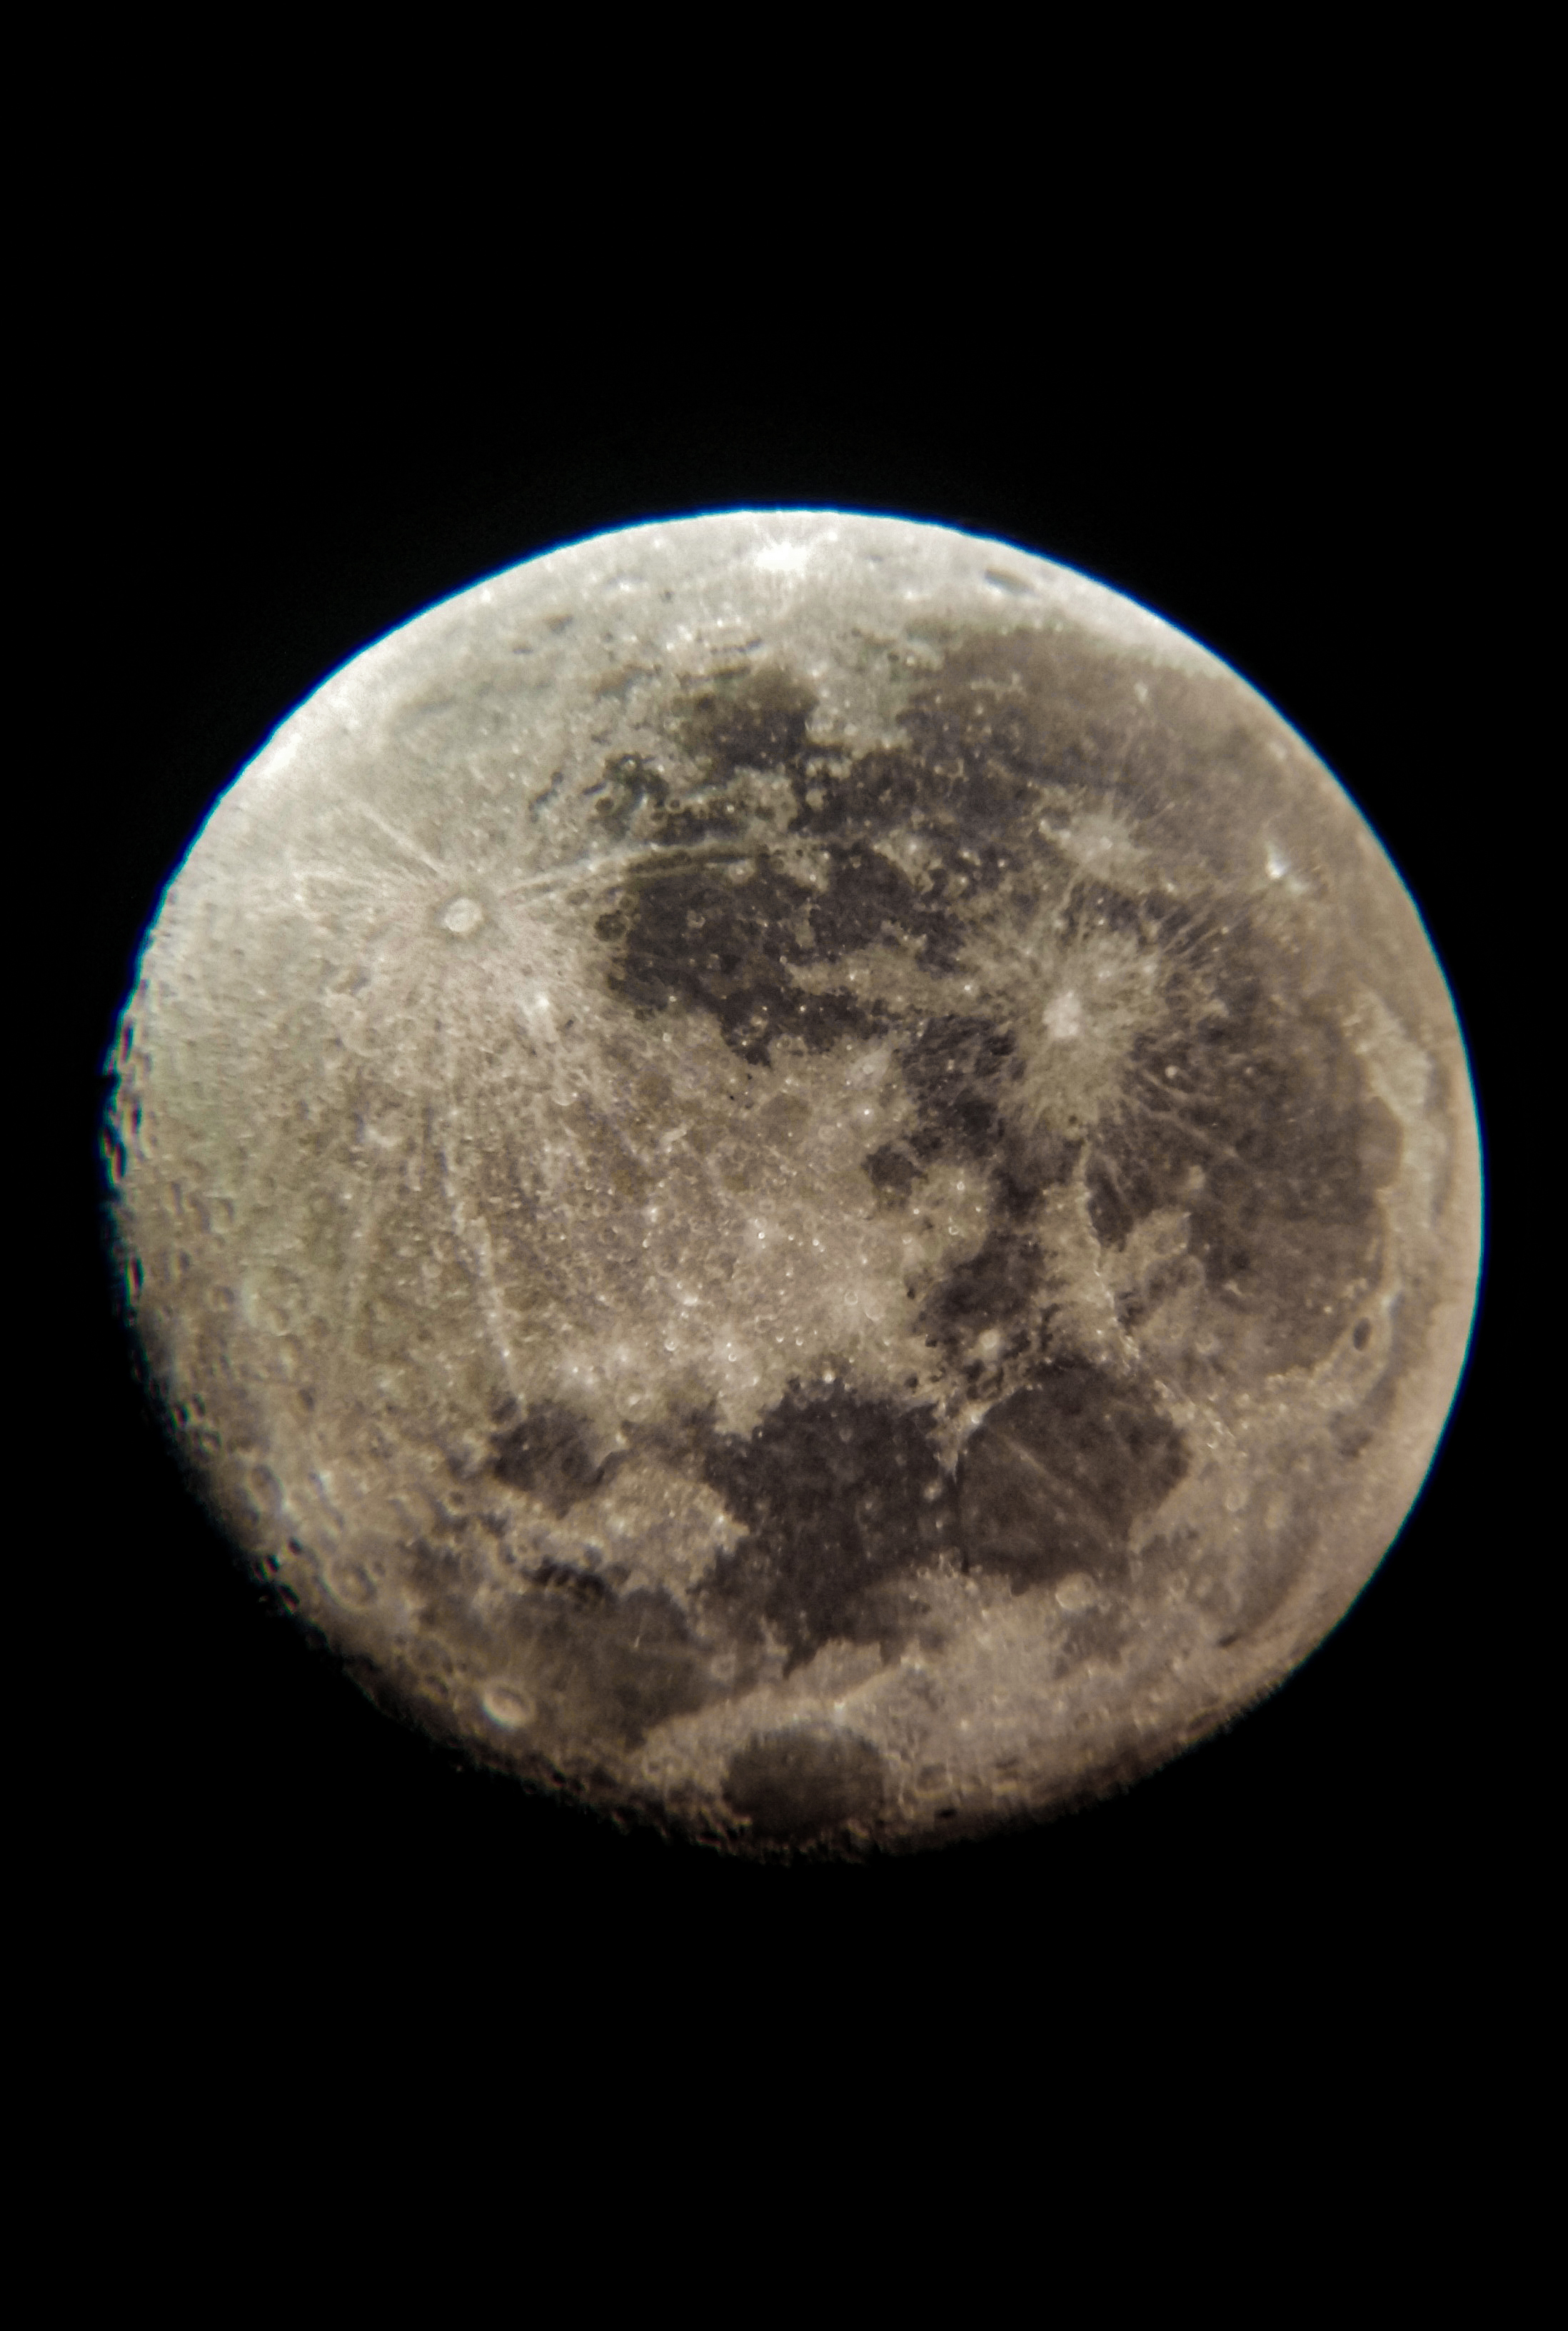 The moon shot in RAW format